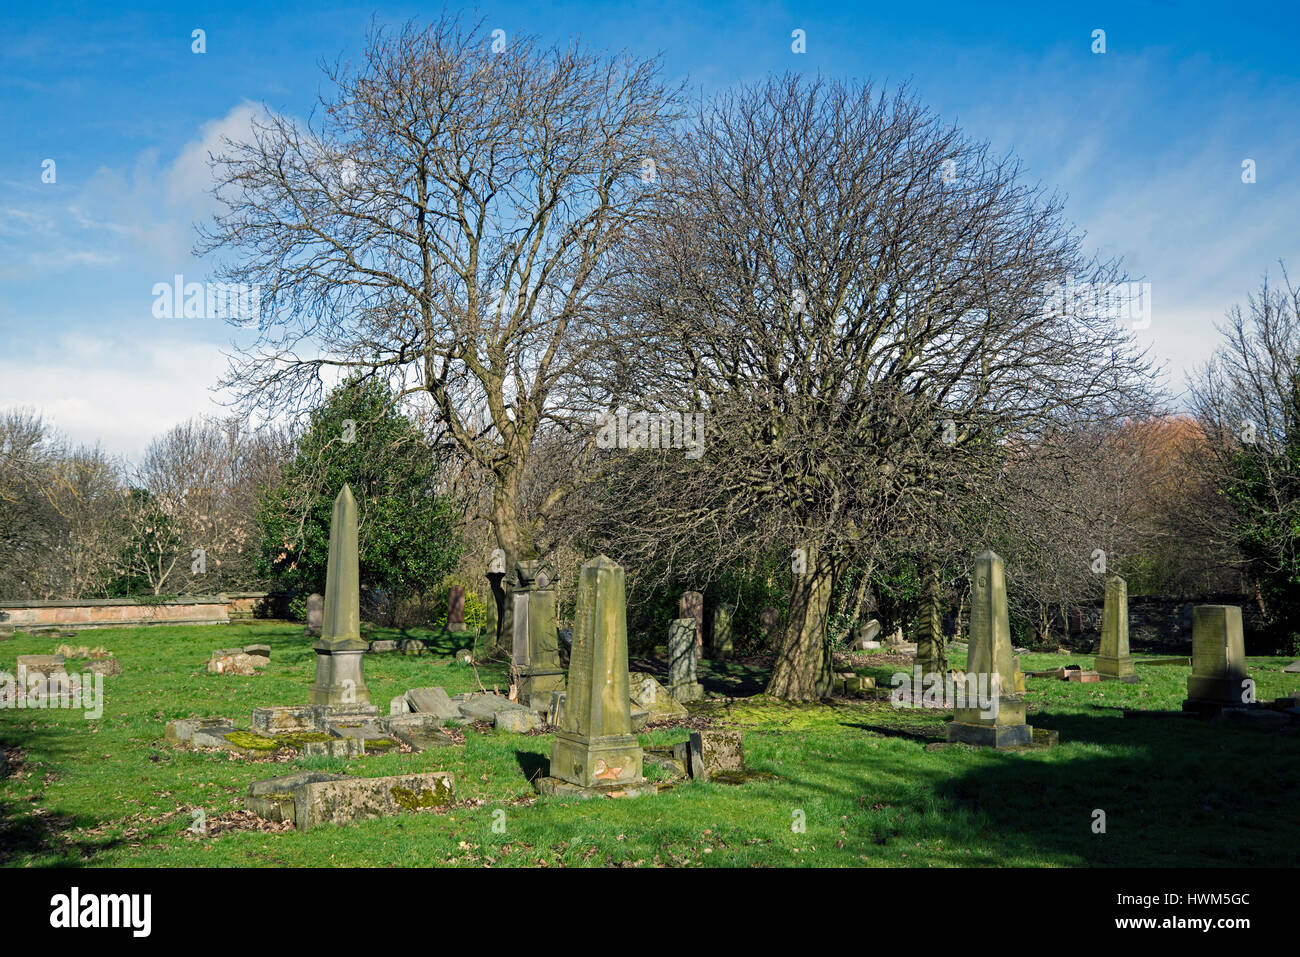 Neglected section of Dalry Cemetery in Ednburgh, Scotland, UK. - Stock Image